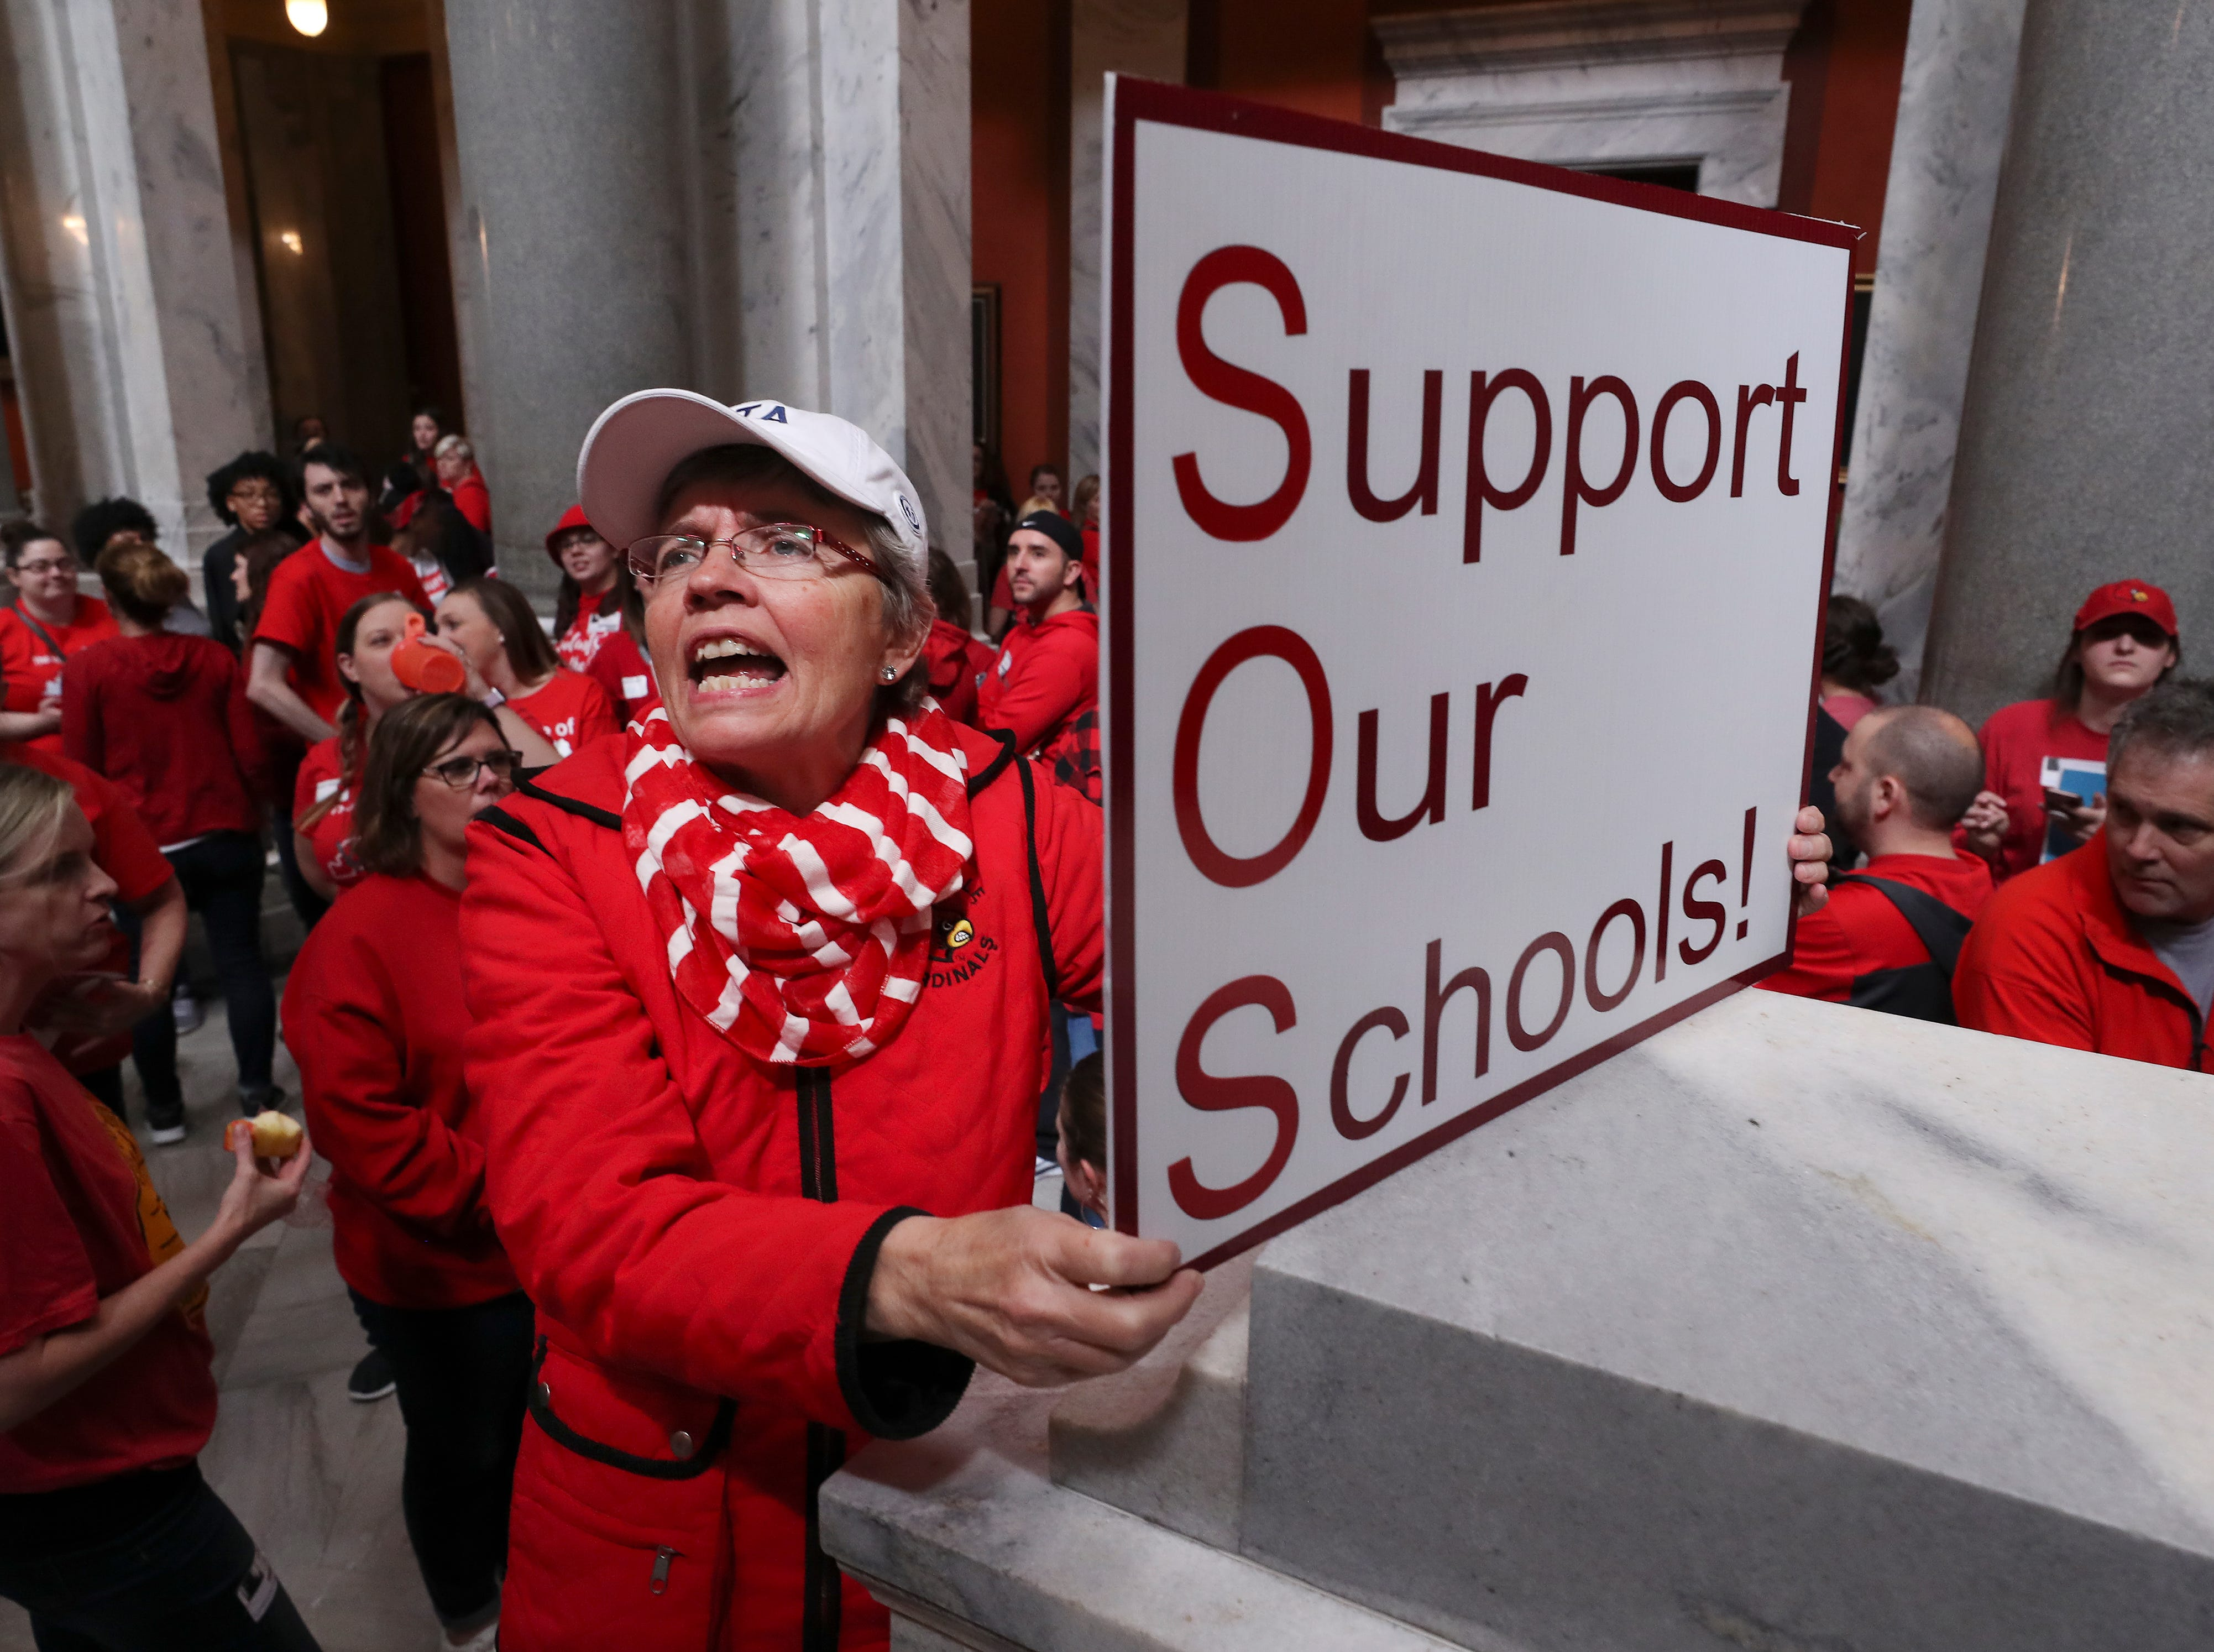 Karen Schwartz, a teacher at Phoenix School of Discovery in Louisville, protested bills under consideration that she believes will harm education in the state and reduce pensions. March 13, 2019